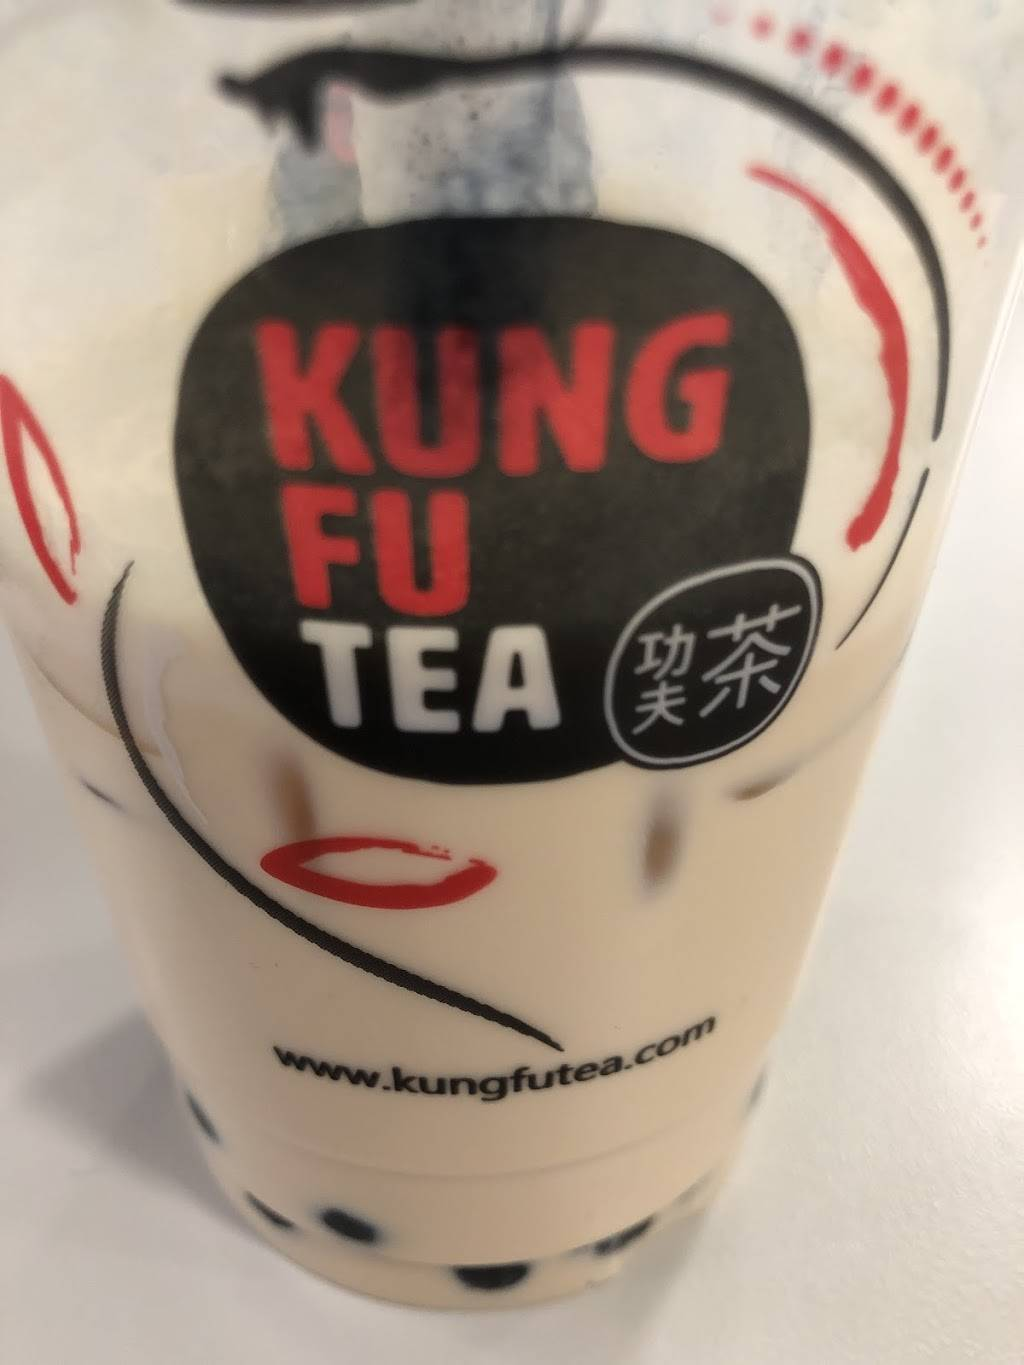 Kung Fu Tea | cafe | 5000 Shelbyville Rd, Louisville, KY 40207, USA | 5022022981 OR +1 502-202-2981